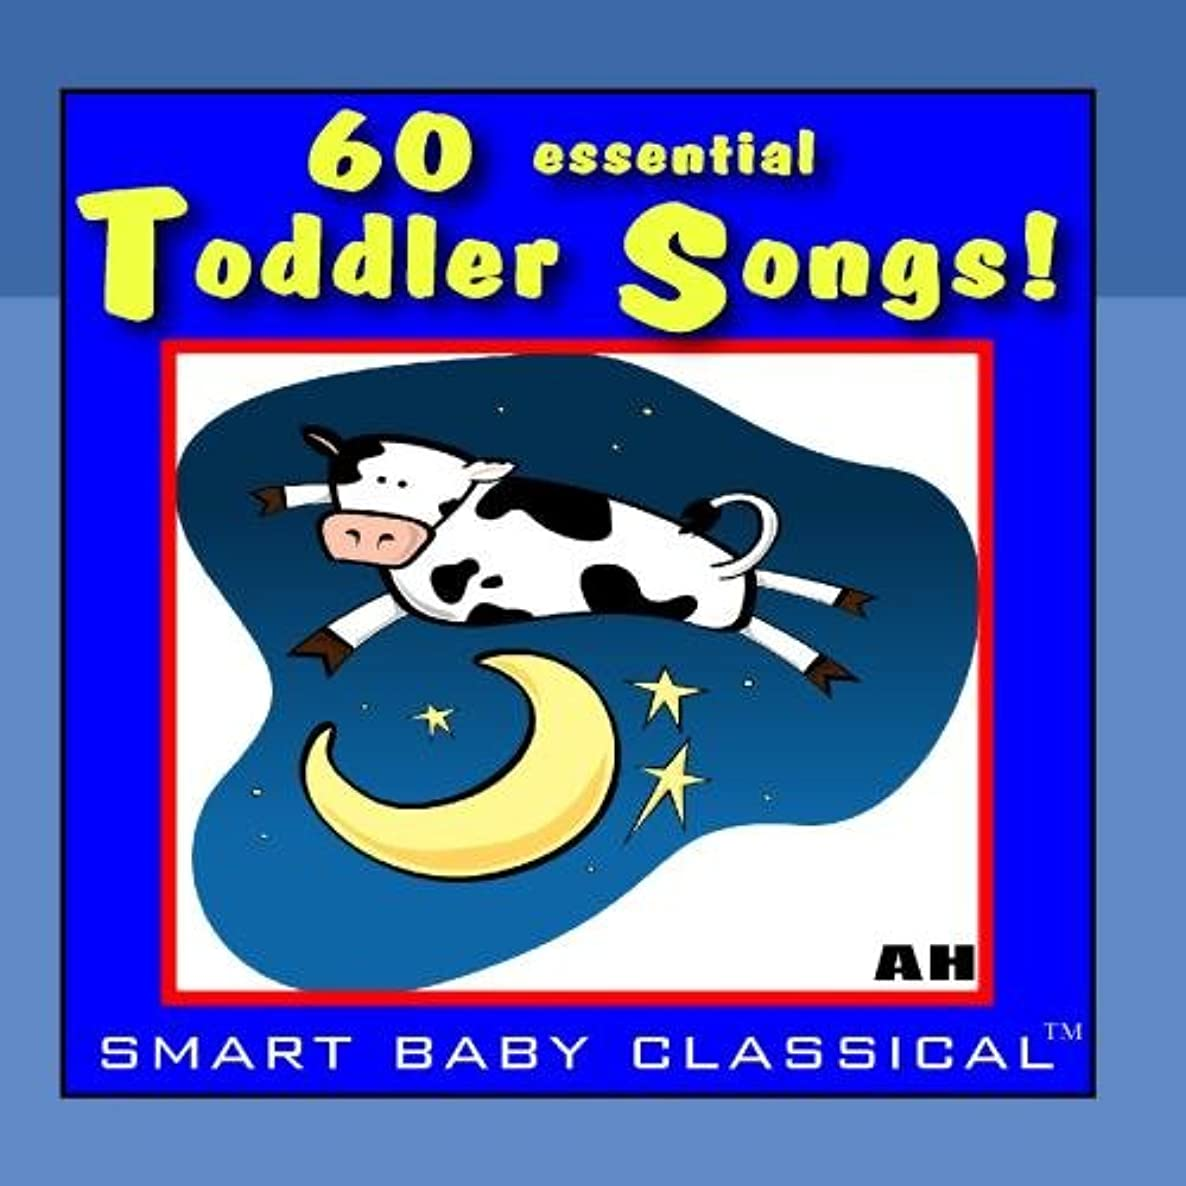 60 Essential Toddler Songs